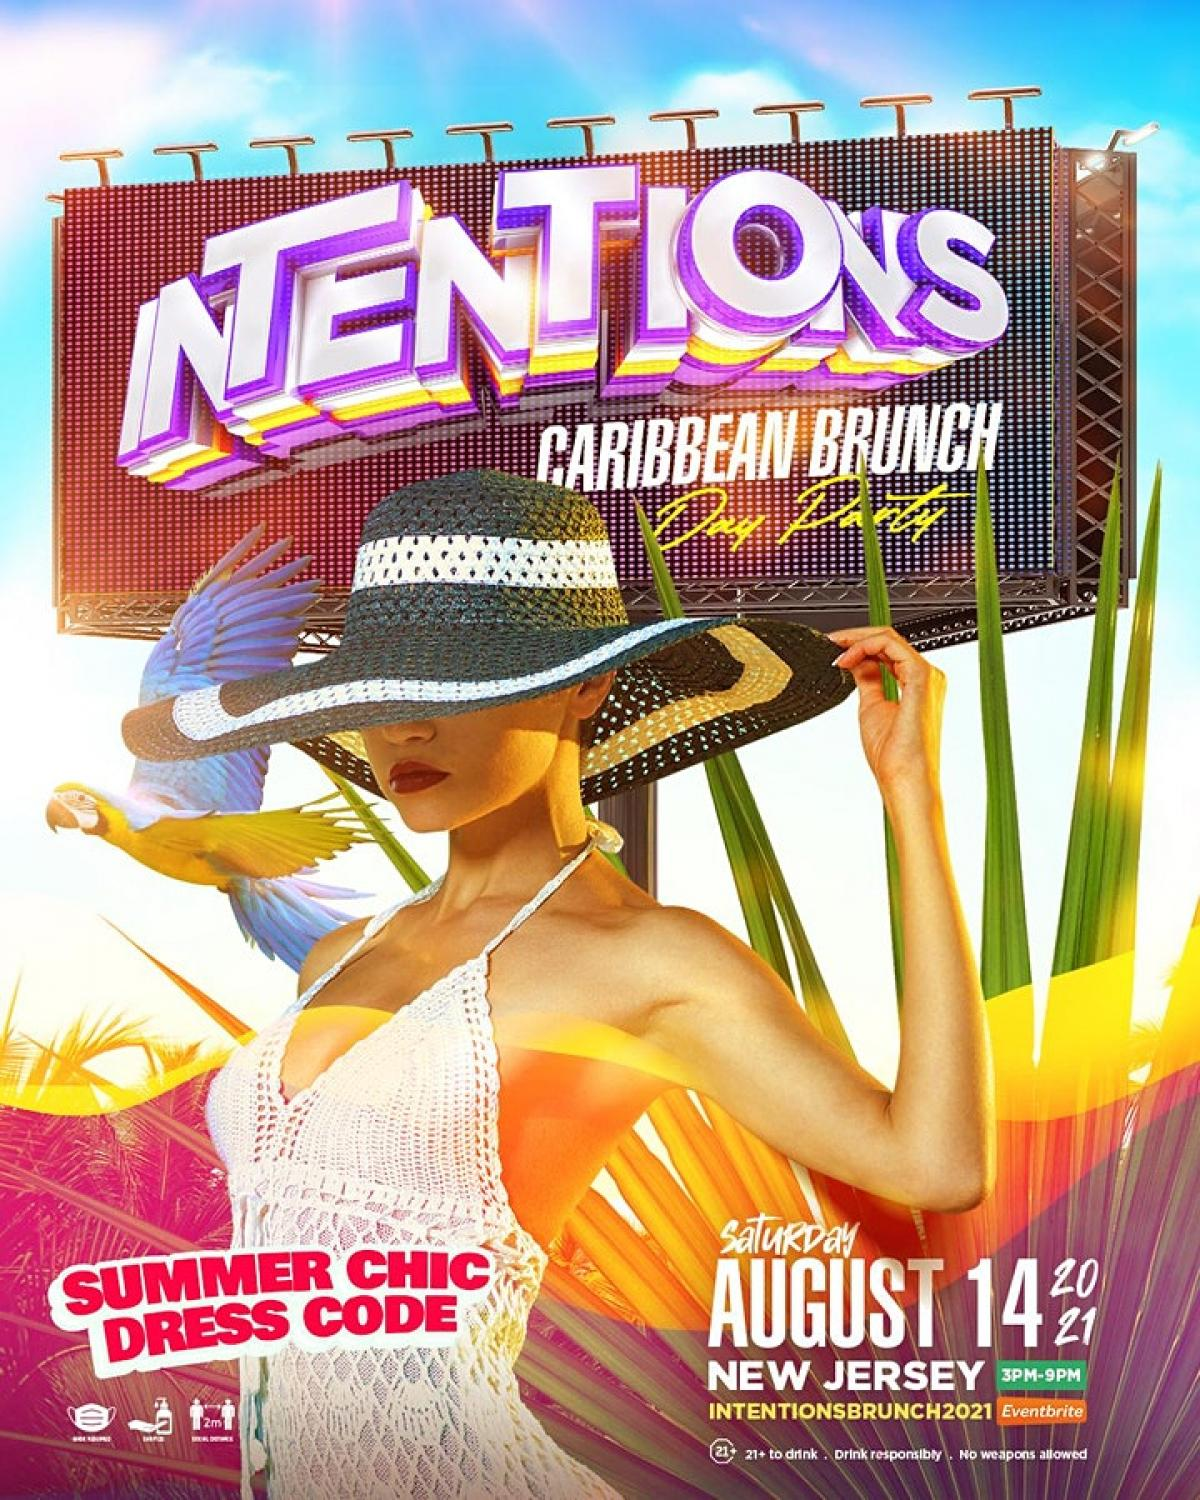 Intentions 2021 - Caribbean Brunch & Day Party flyer or graphic.